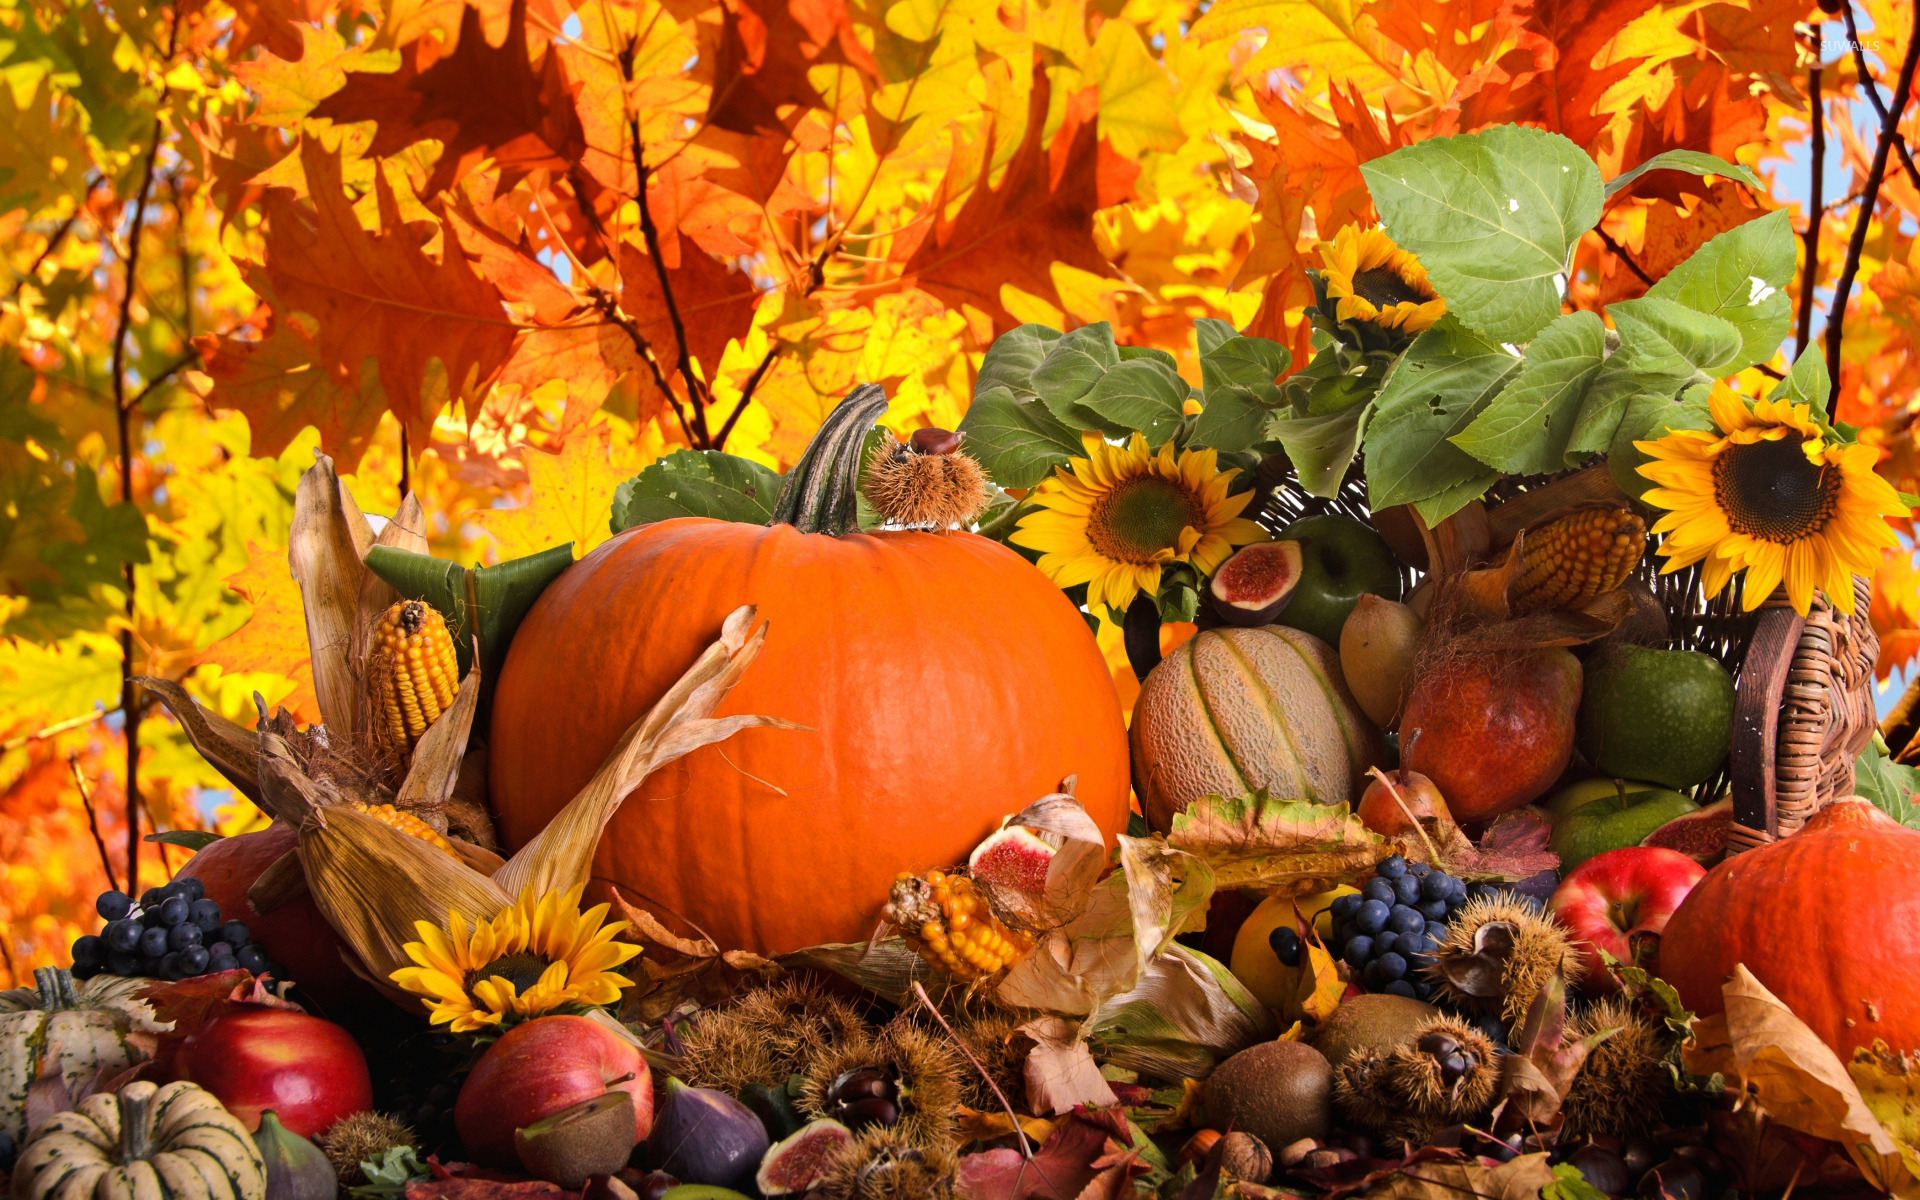 autumn-harvest-wallpaper-holiday-wallpapers-23575